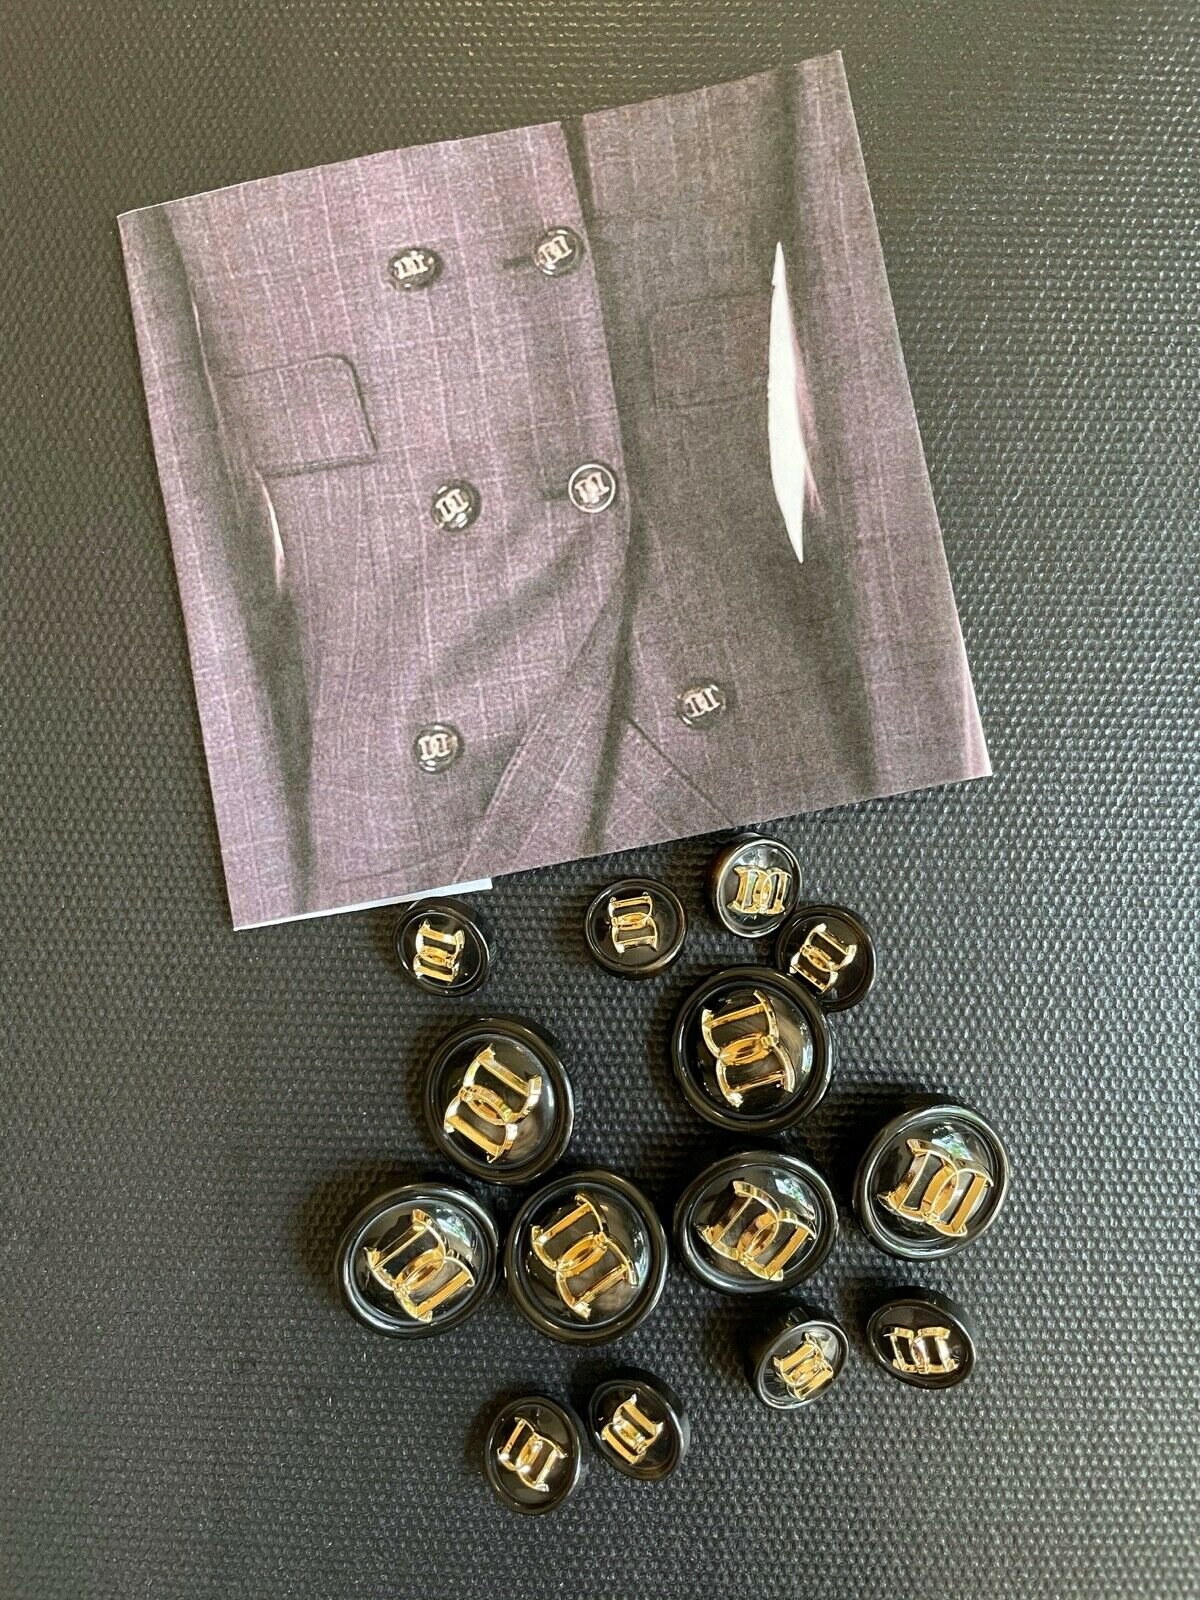 Set of DSquared2 buttons (Preloved)